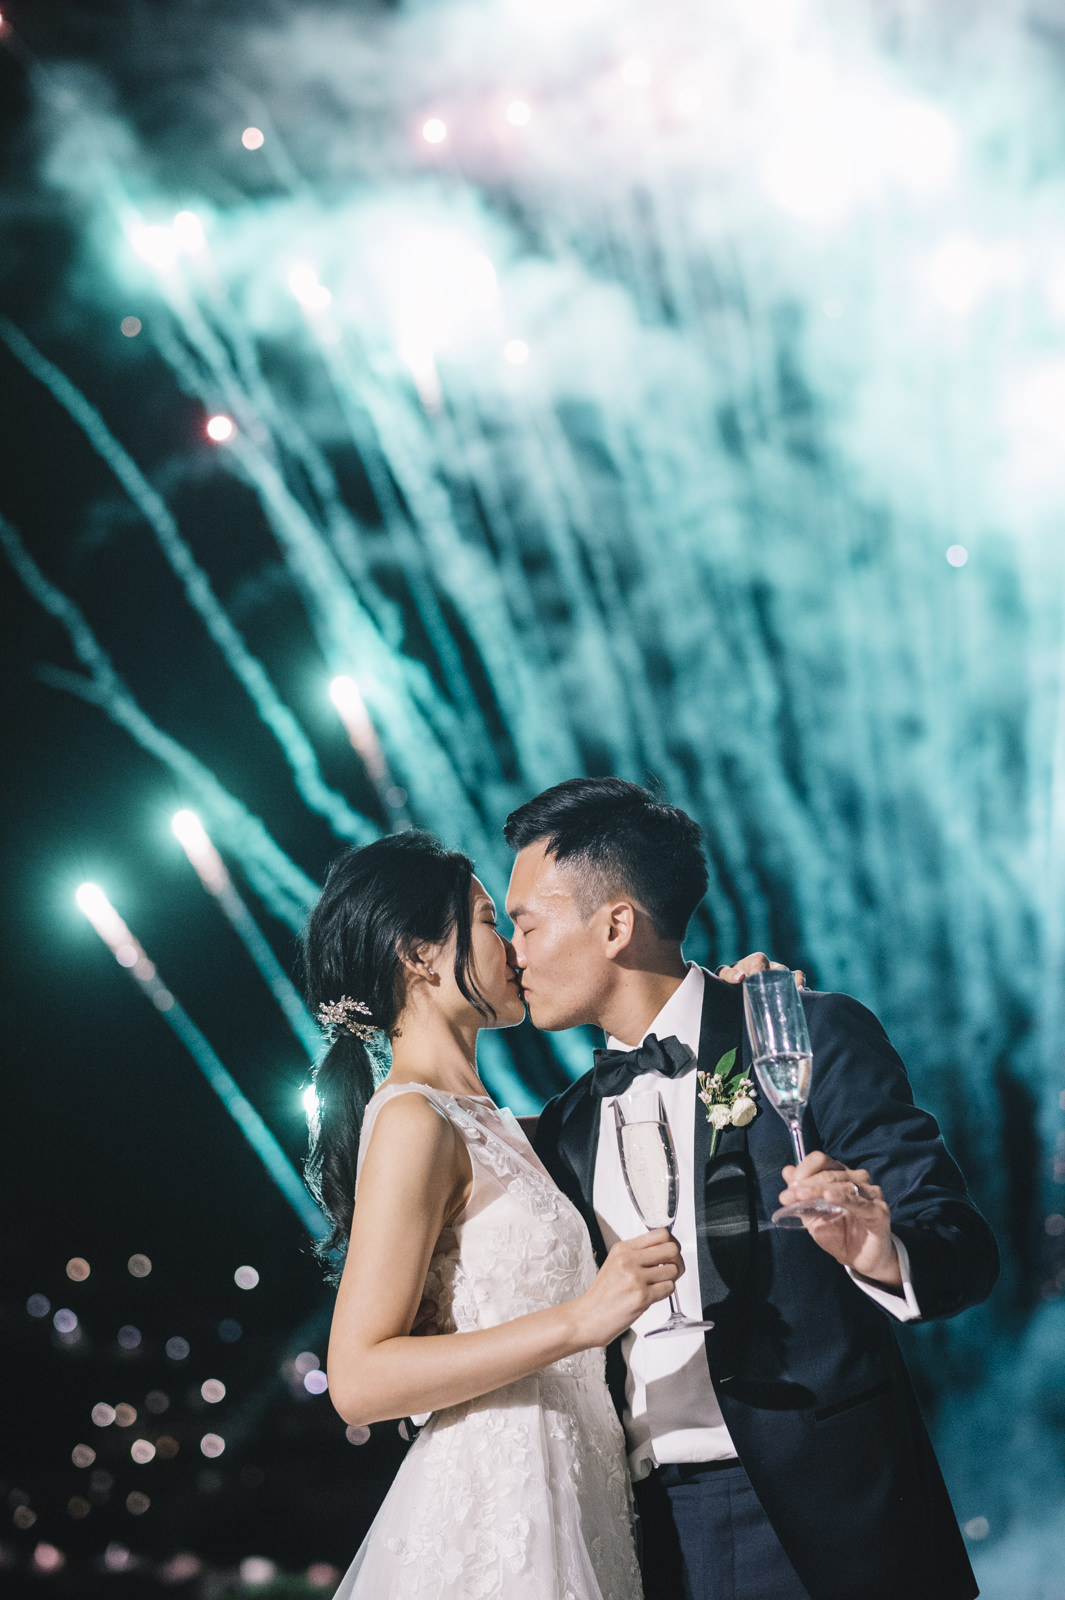 the groom kissing the bride during the fireworks